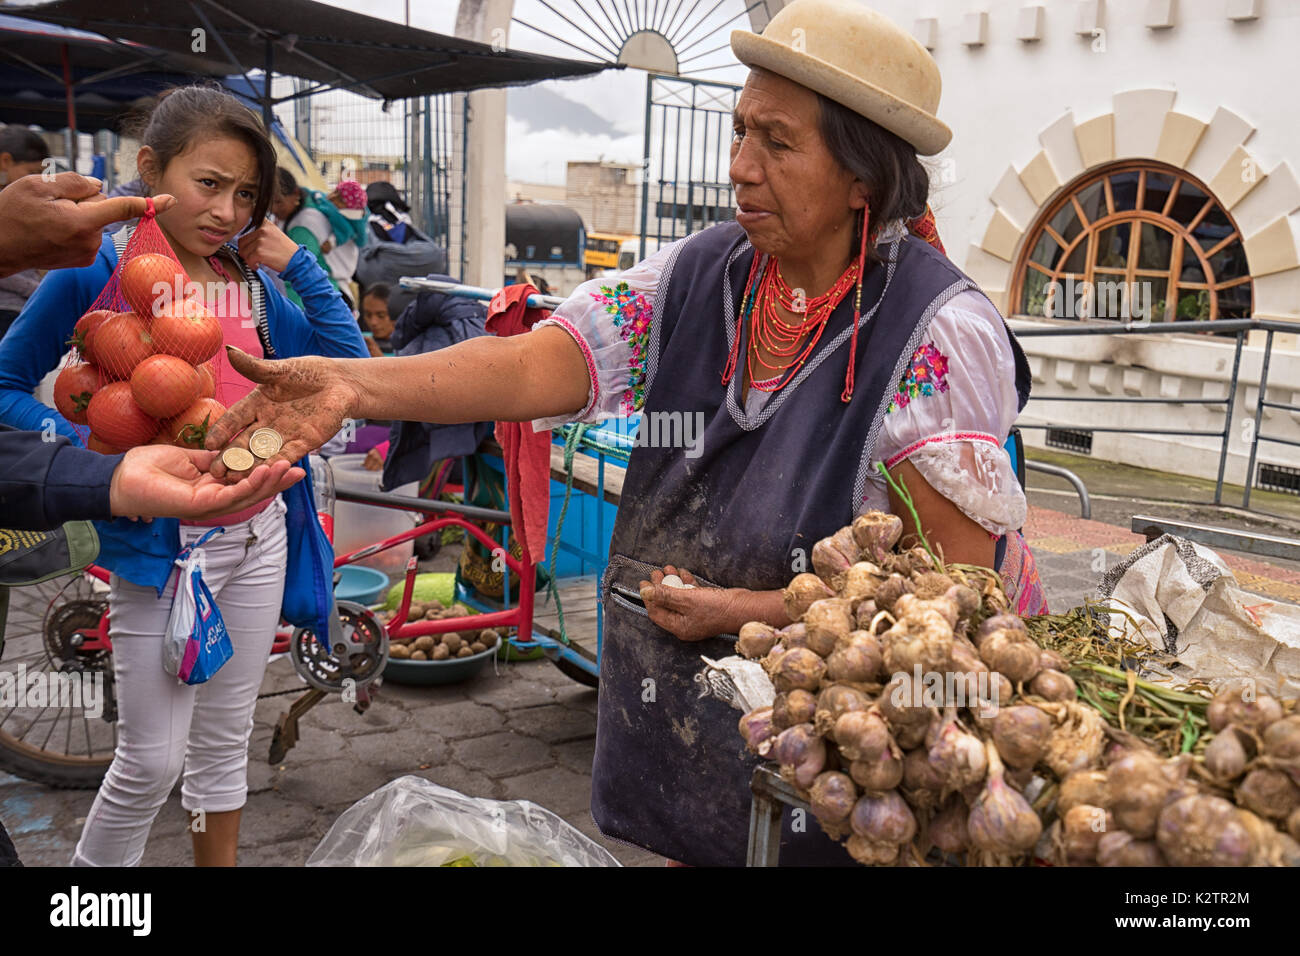 May 6, 2017 Otavalo, Ecuador: produce vendor in the Saturday market giving change to costumer - Stock Image